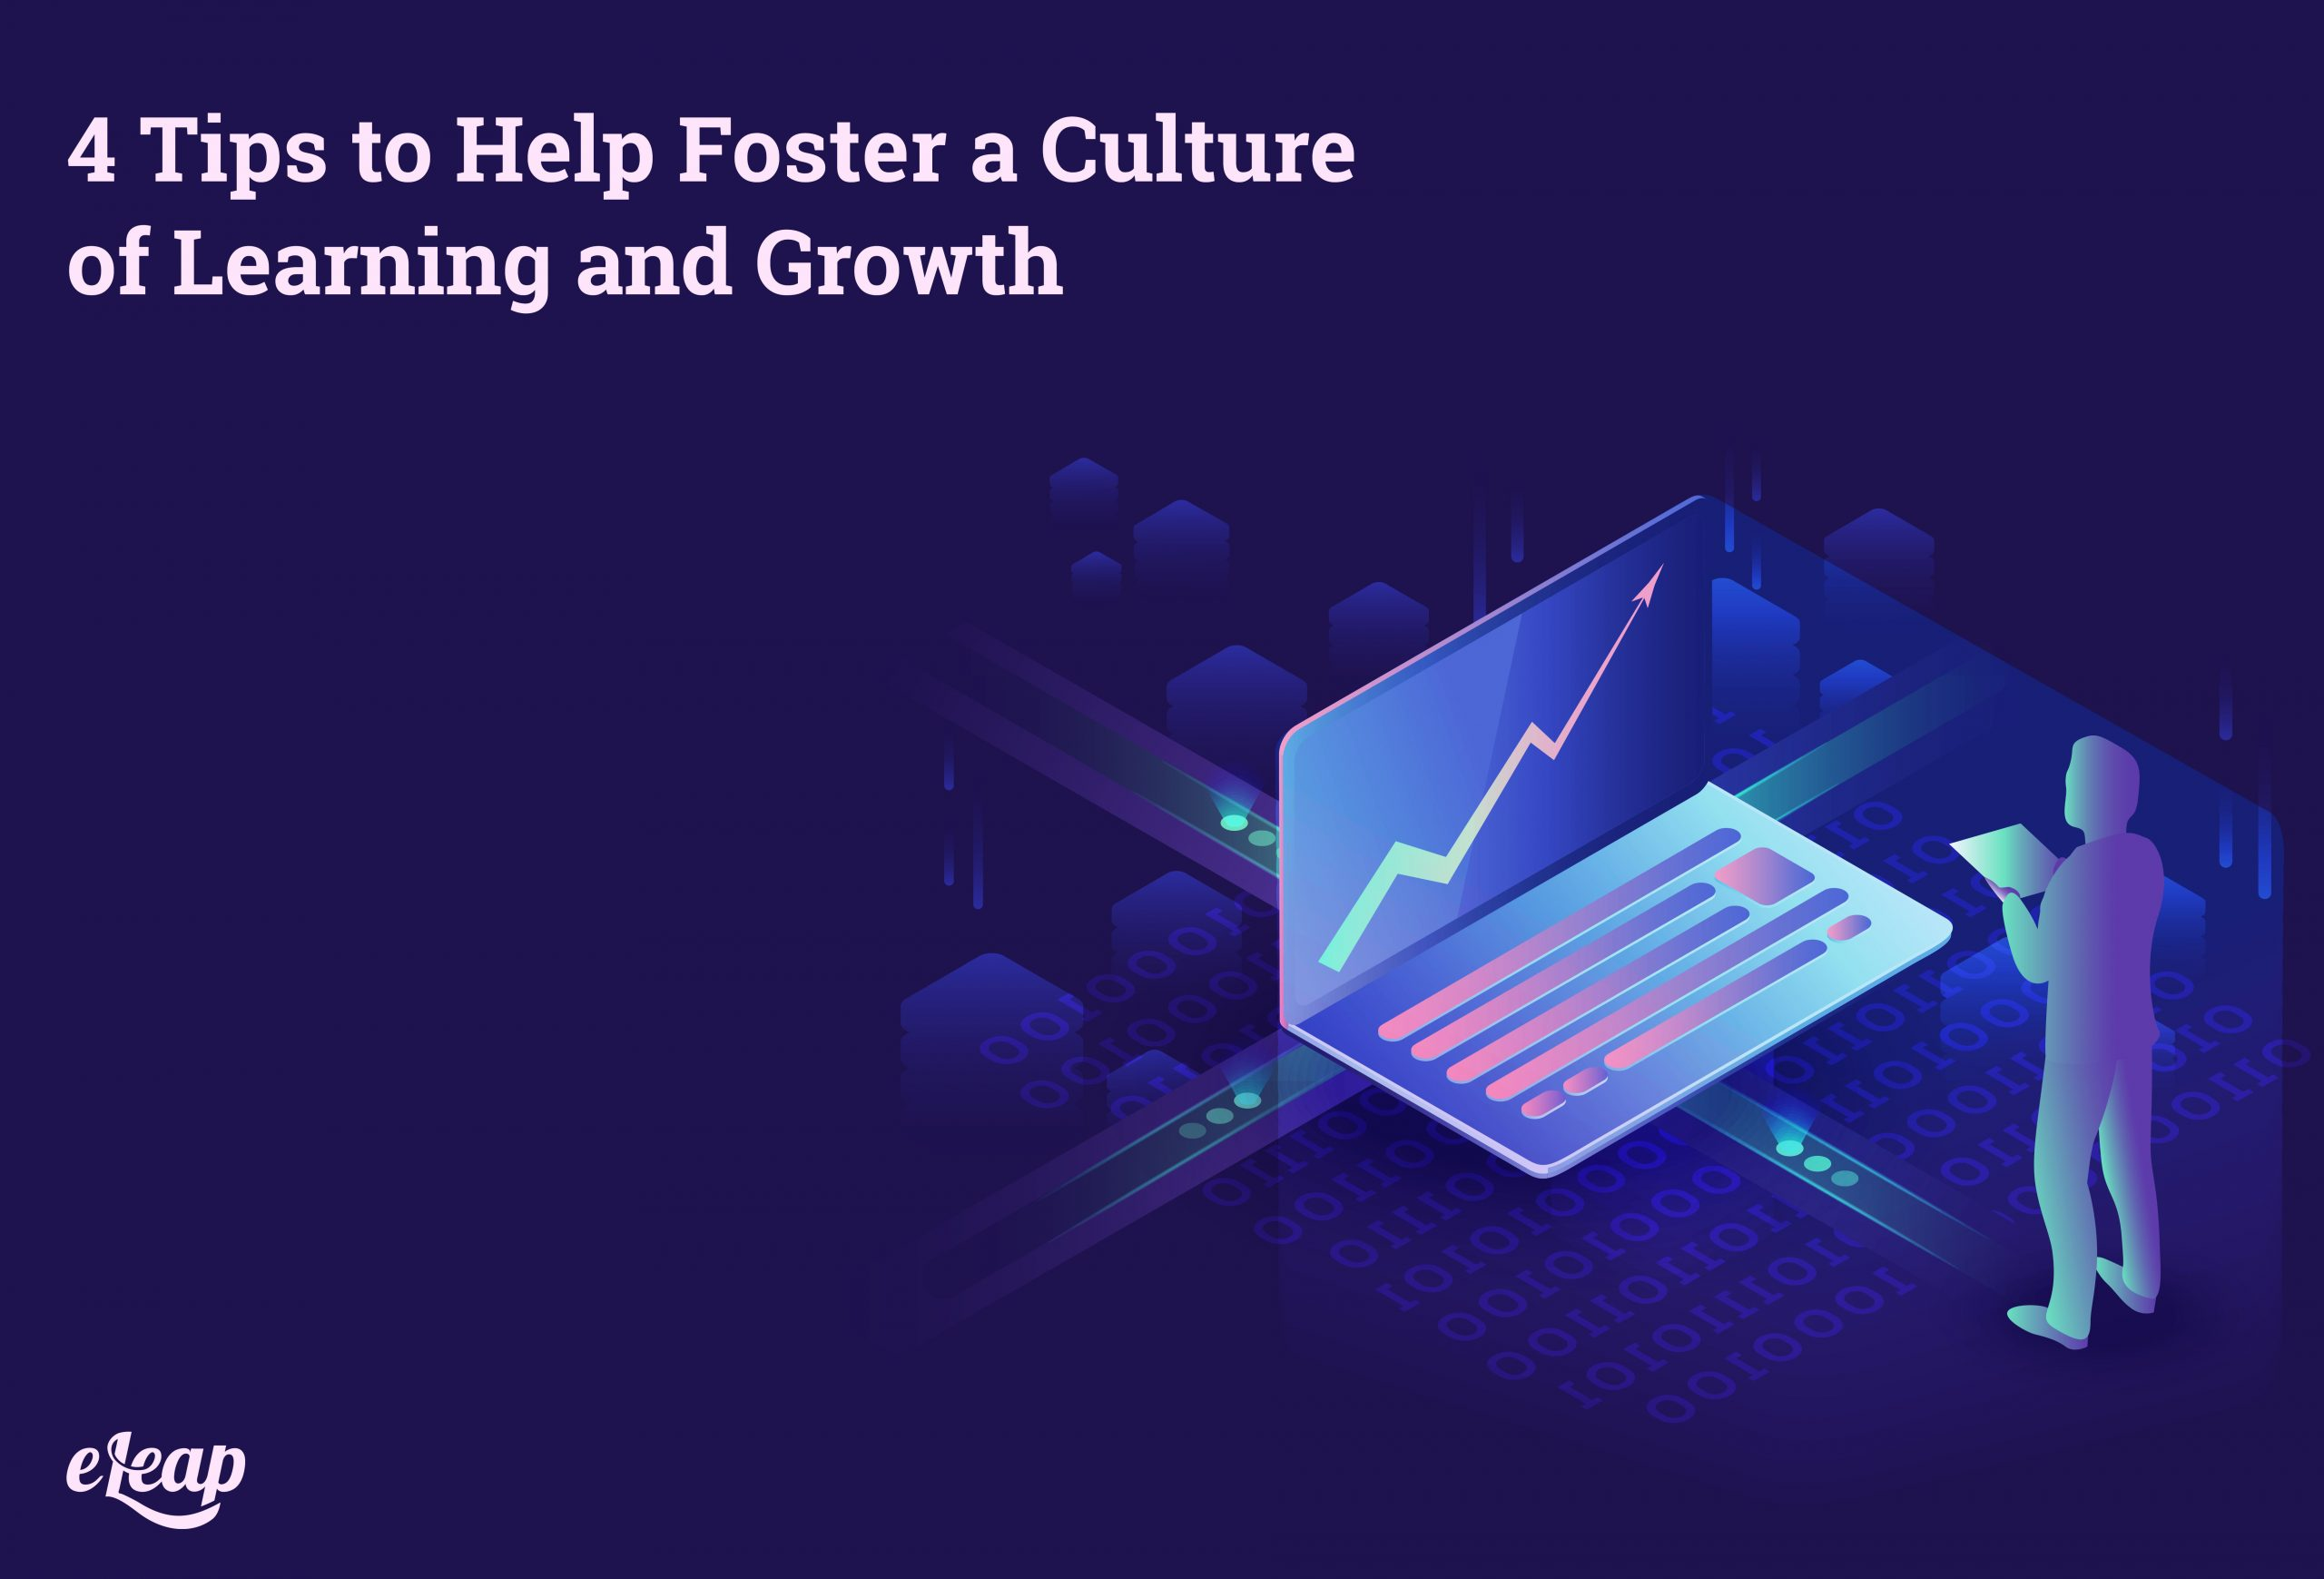 4 Tips to Help Foster a Culture of Learning and Growth